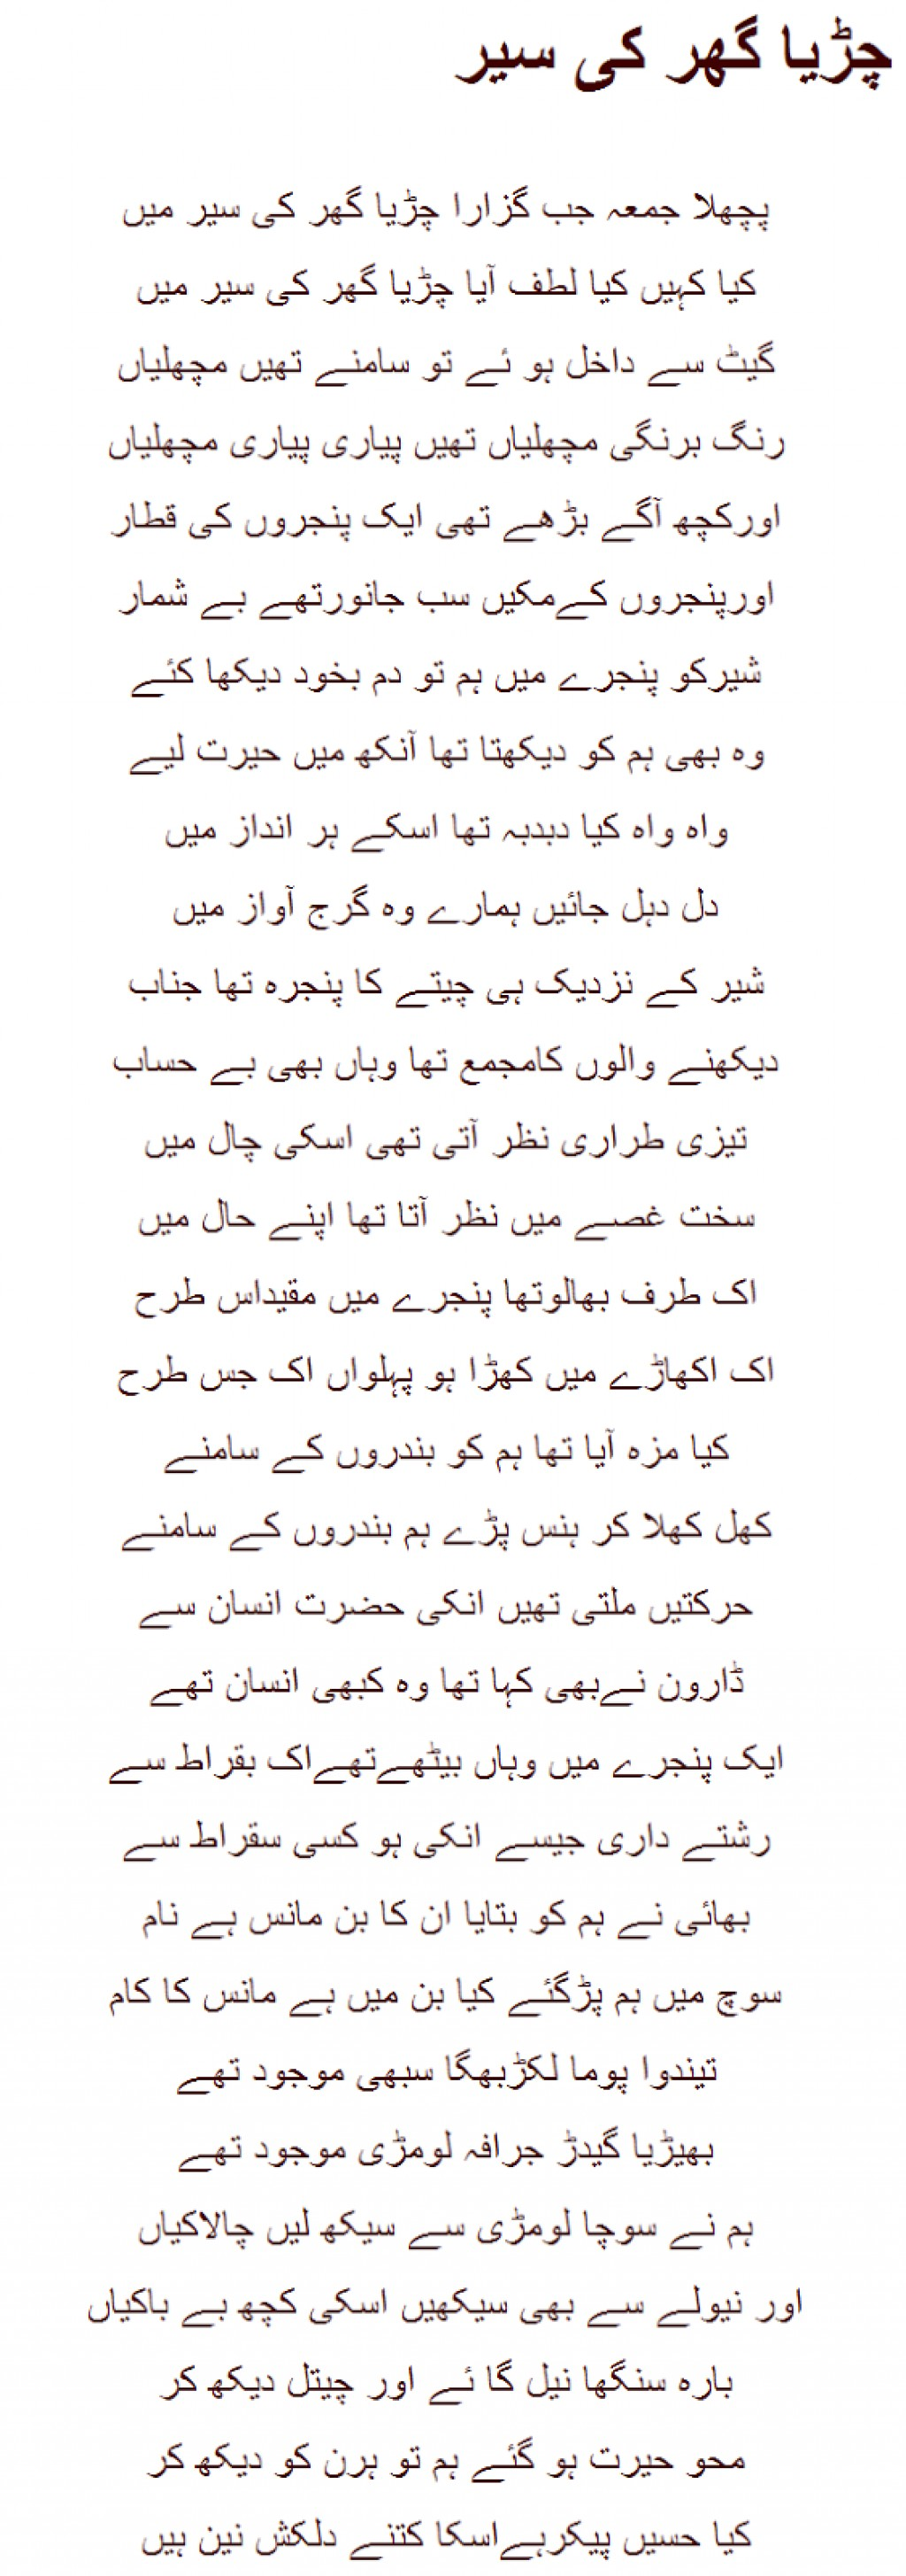 008 Women Empowerment Essay Zoo20shayari20in20urdu Exceptional Pdf Gender Equality And Women's Large